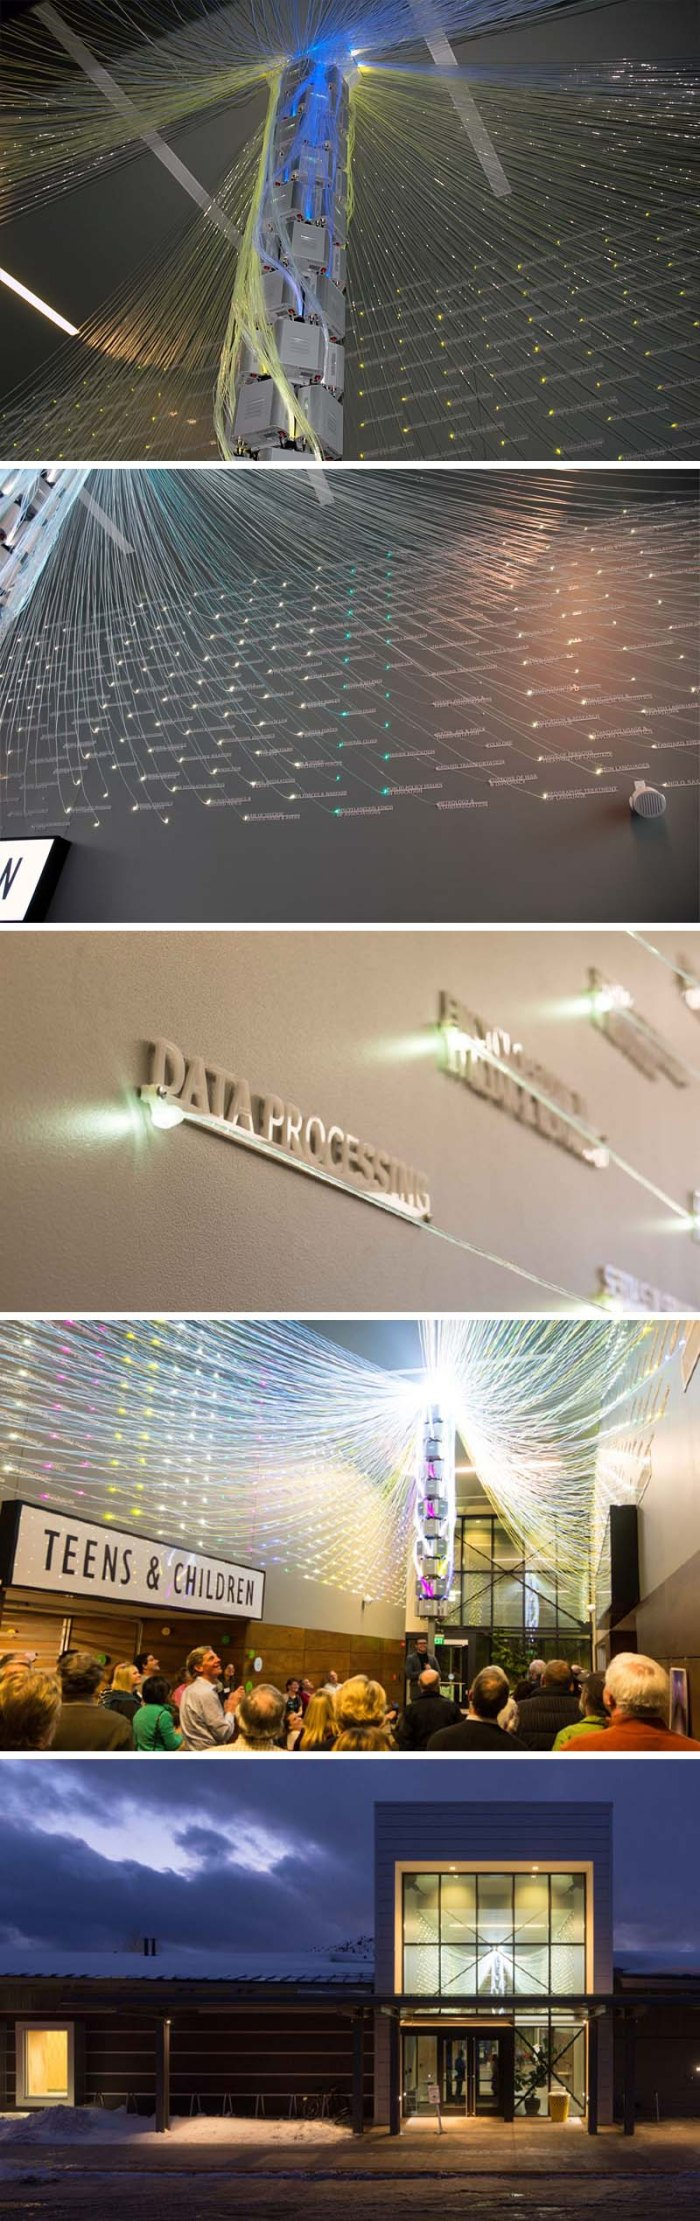 Filament Mind, data visualization installation at Teton County Library, Wyoming, by E/B Office, information graphics, optical fibre